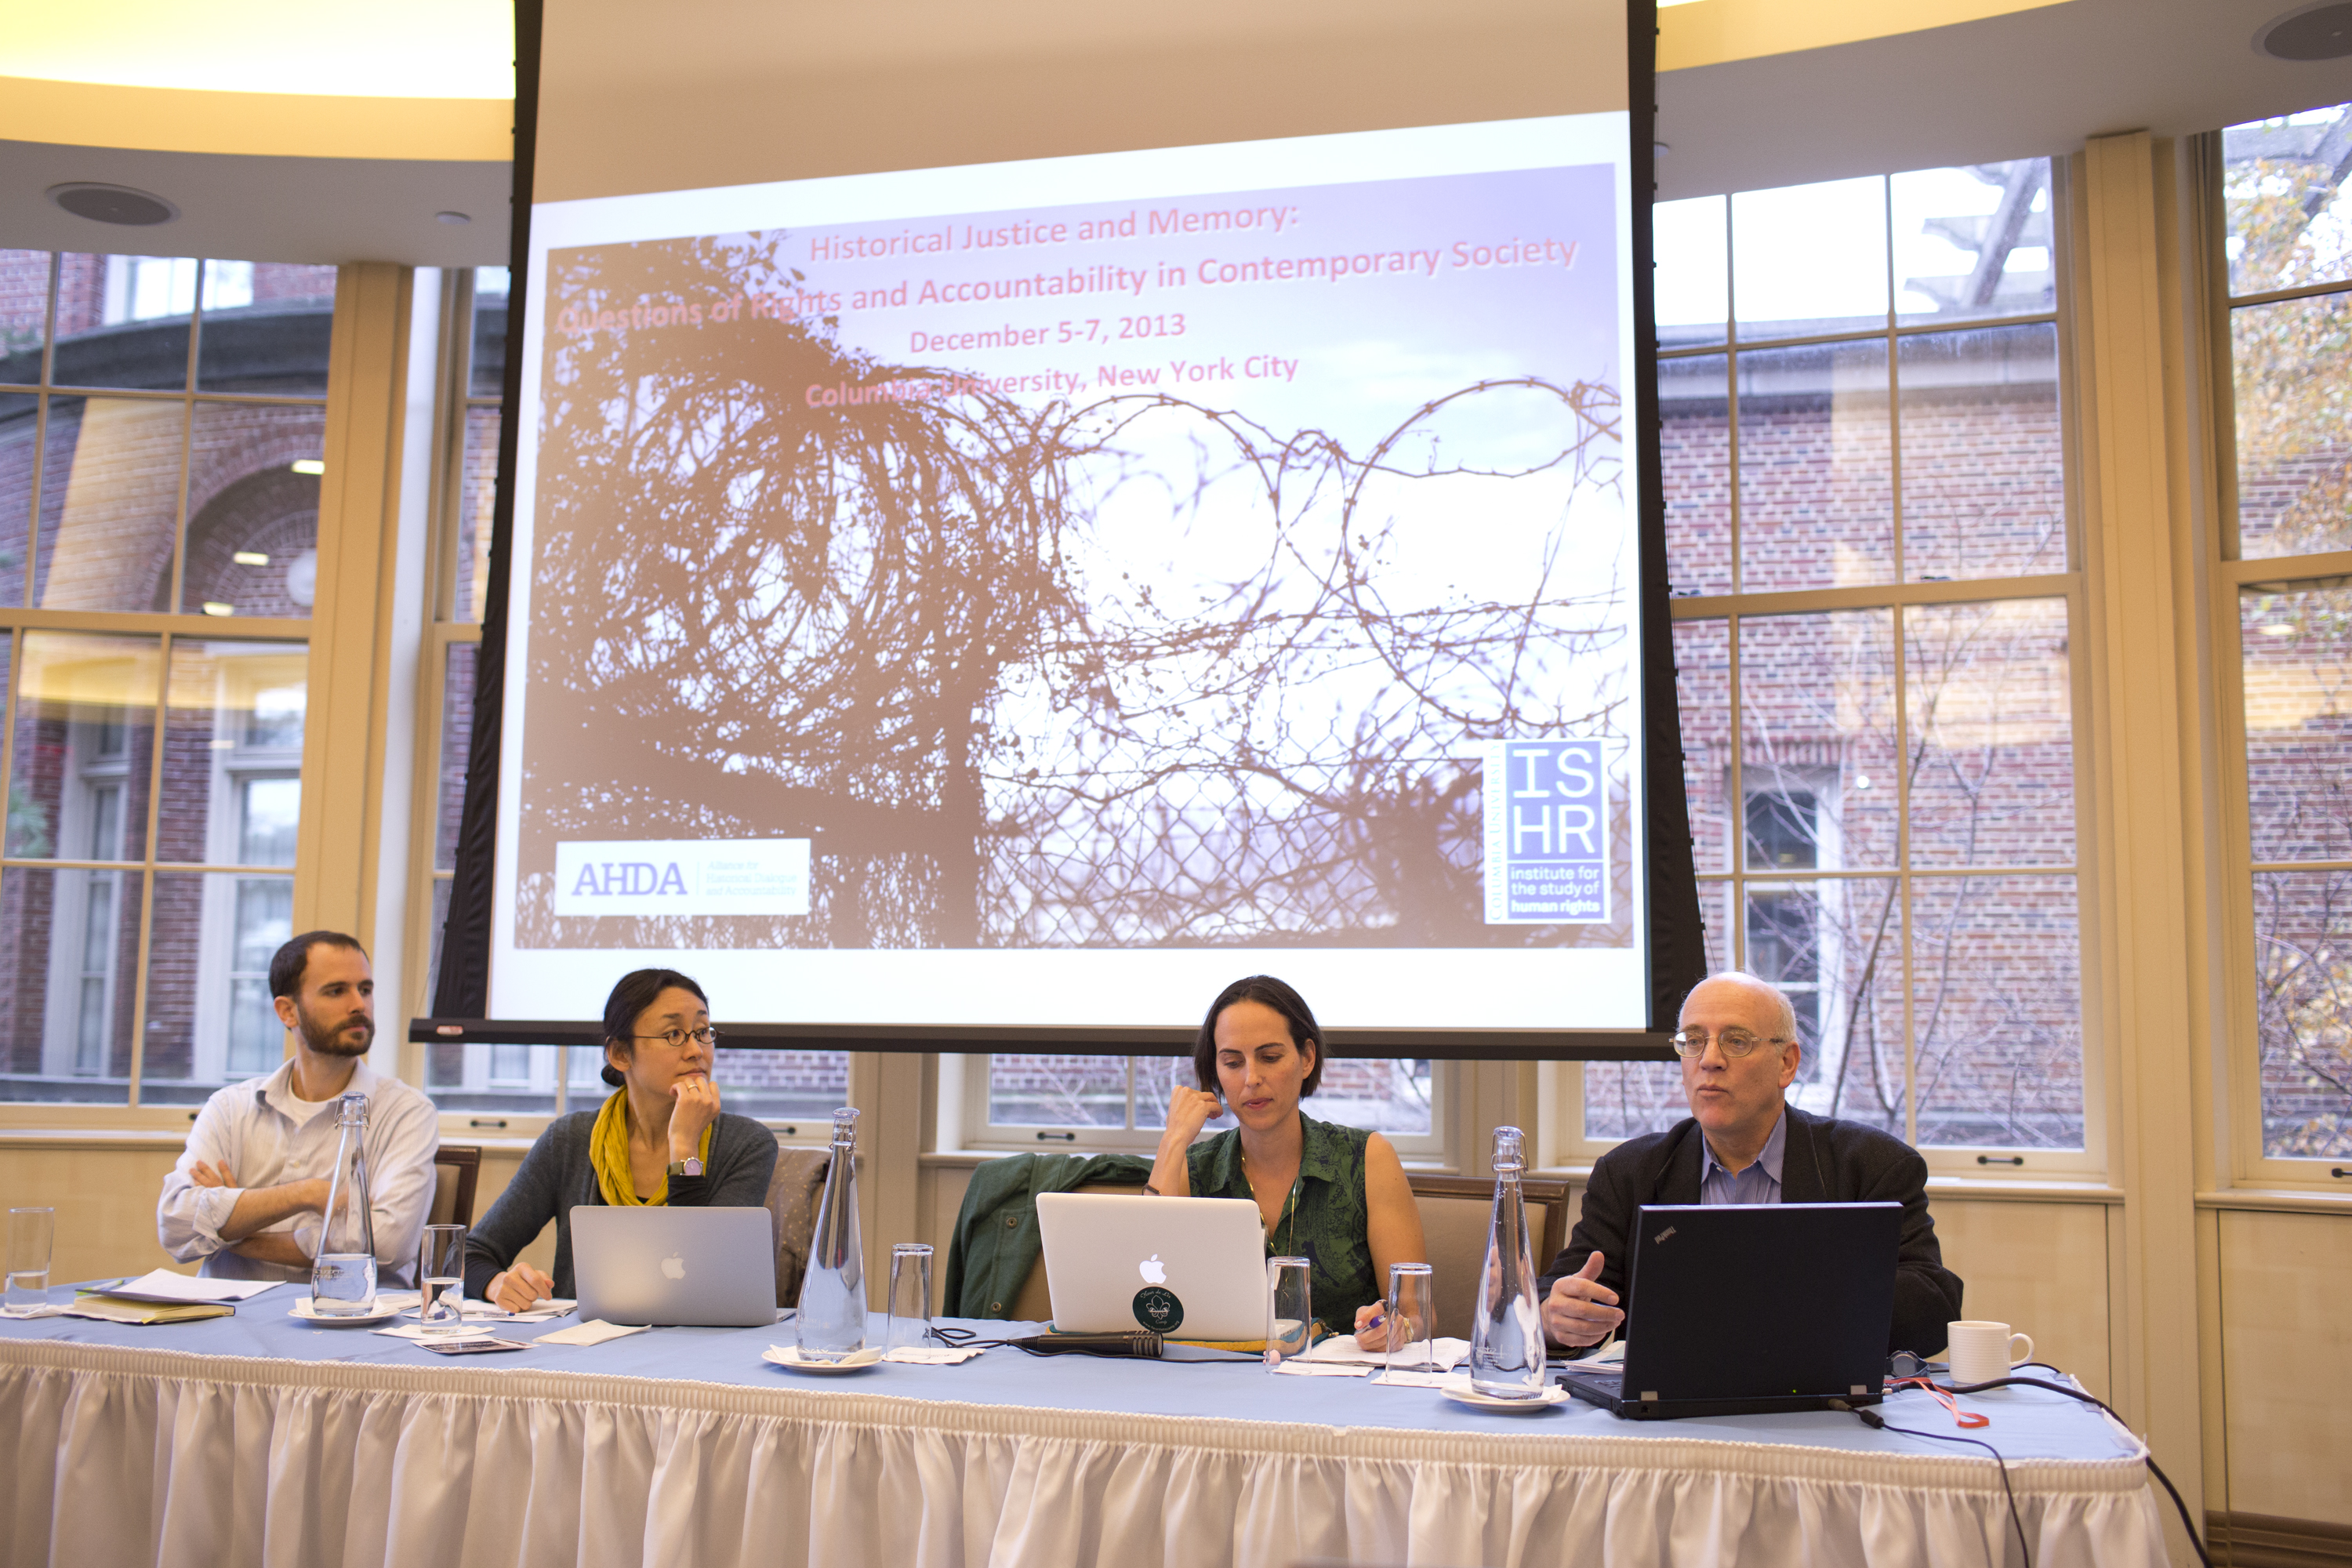 A moment from the 2014 Conference on Historical Justice and Memory